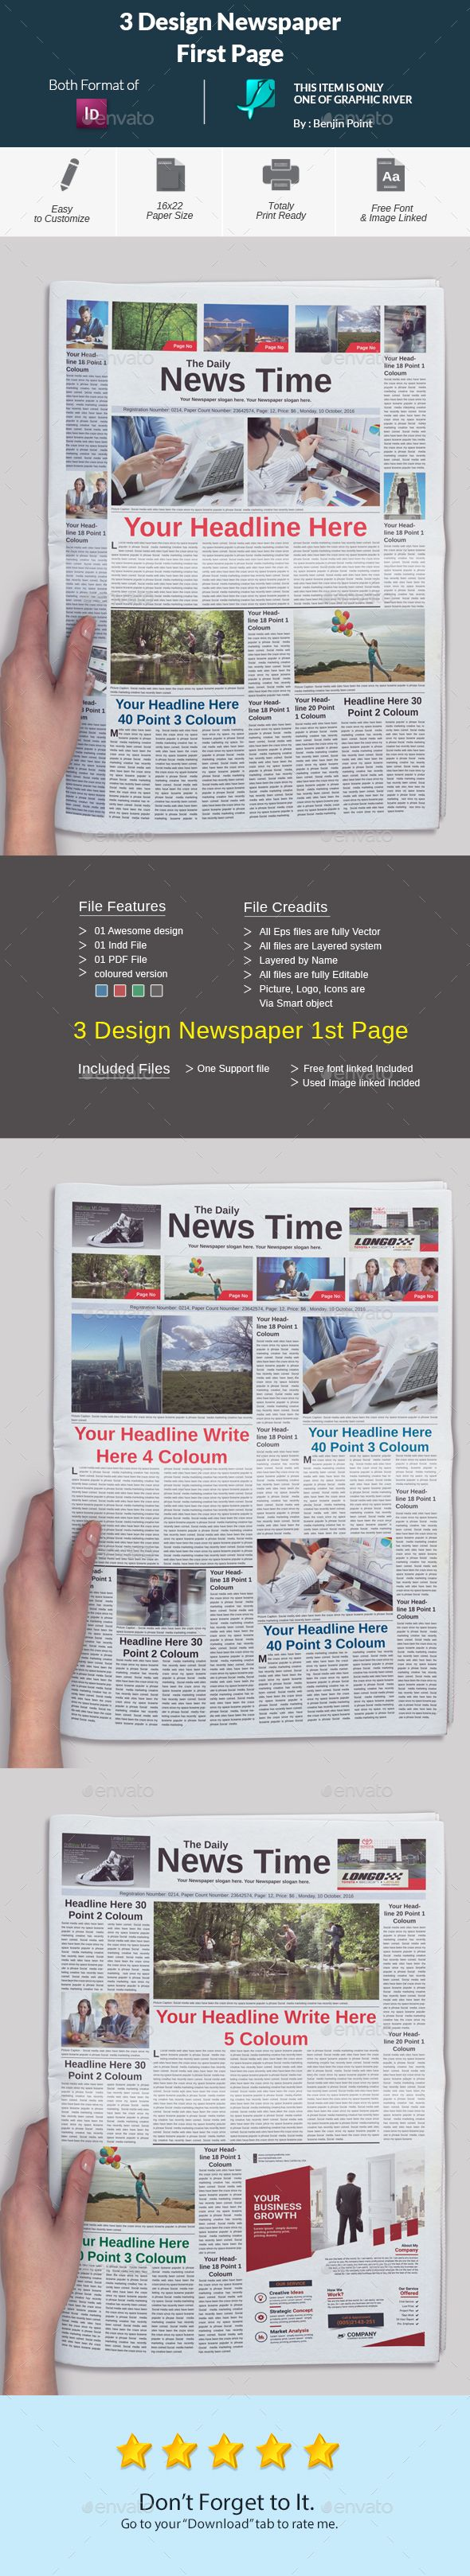 47 best Newsletter Template images on Pinterest | Newsletter ...